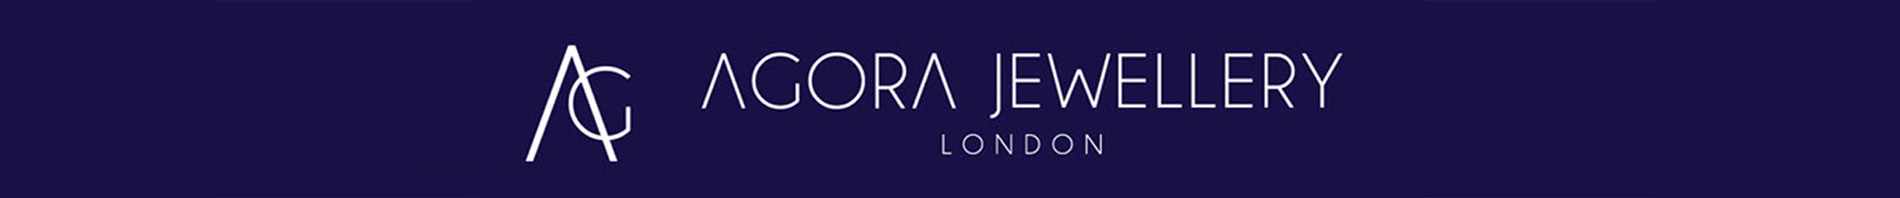 Agora Jewellery London